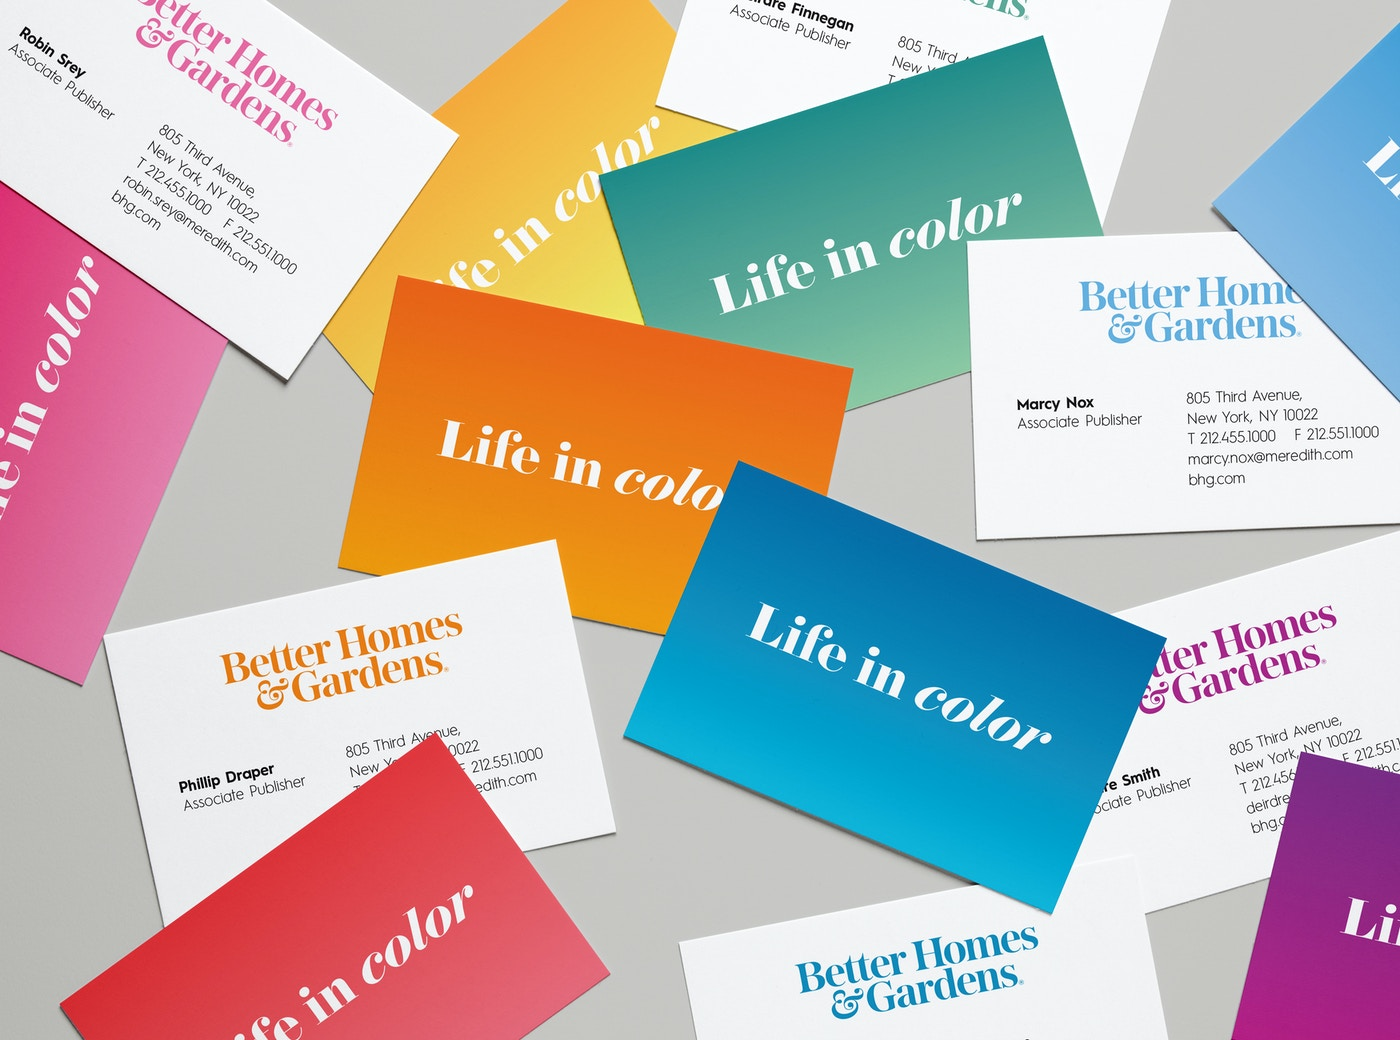 Better Homes & Gardens business cards